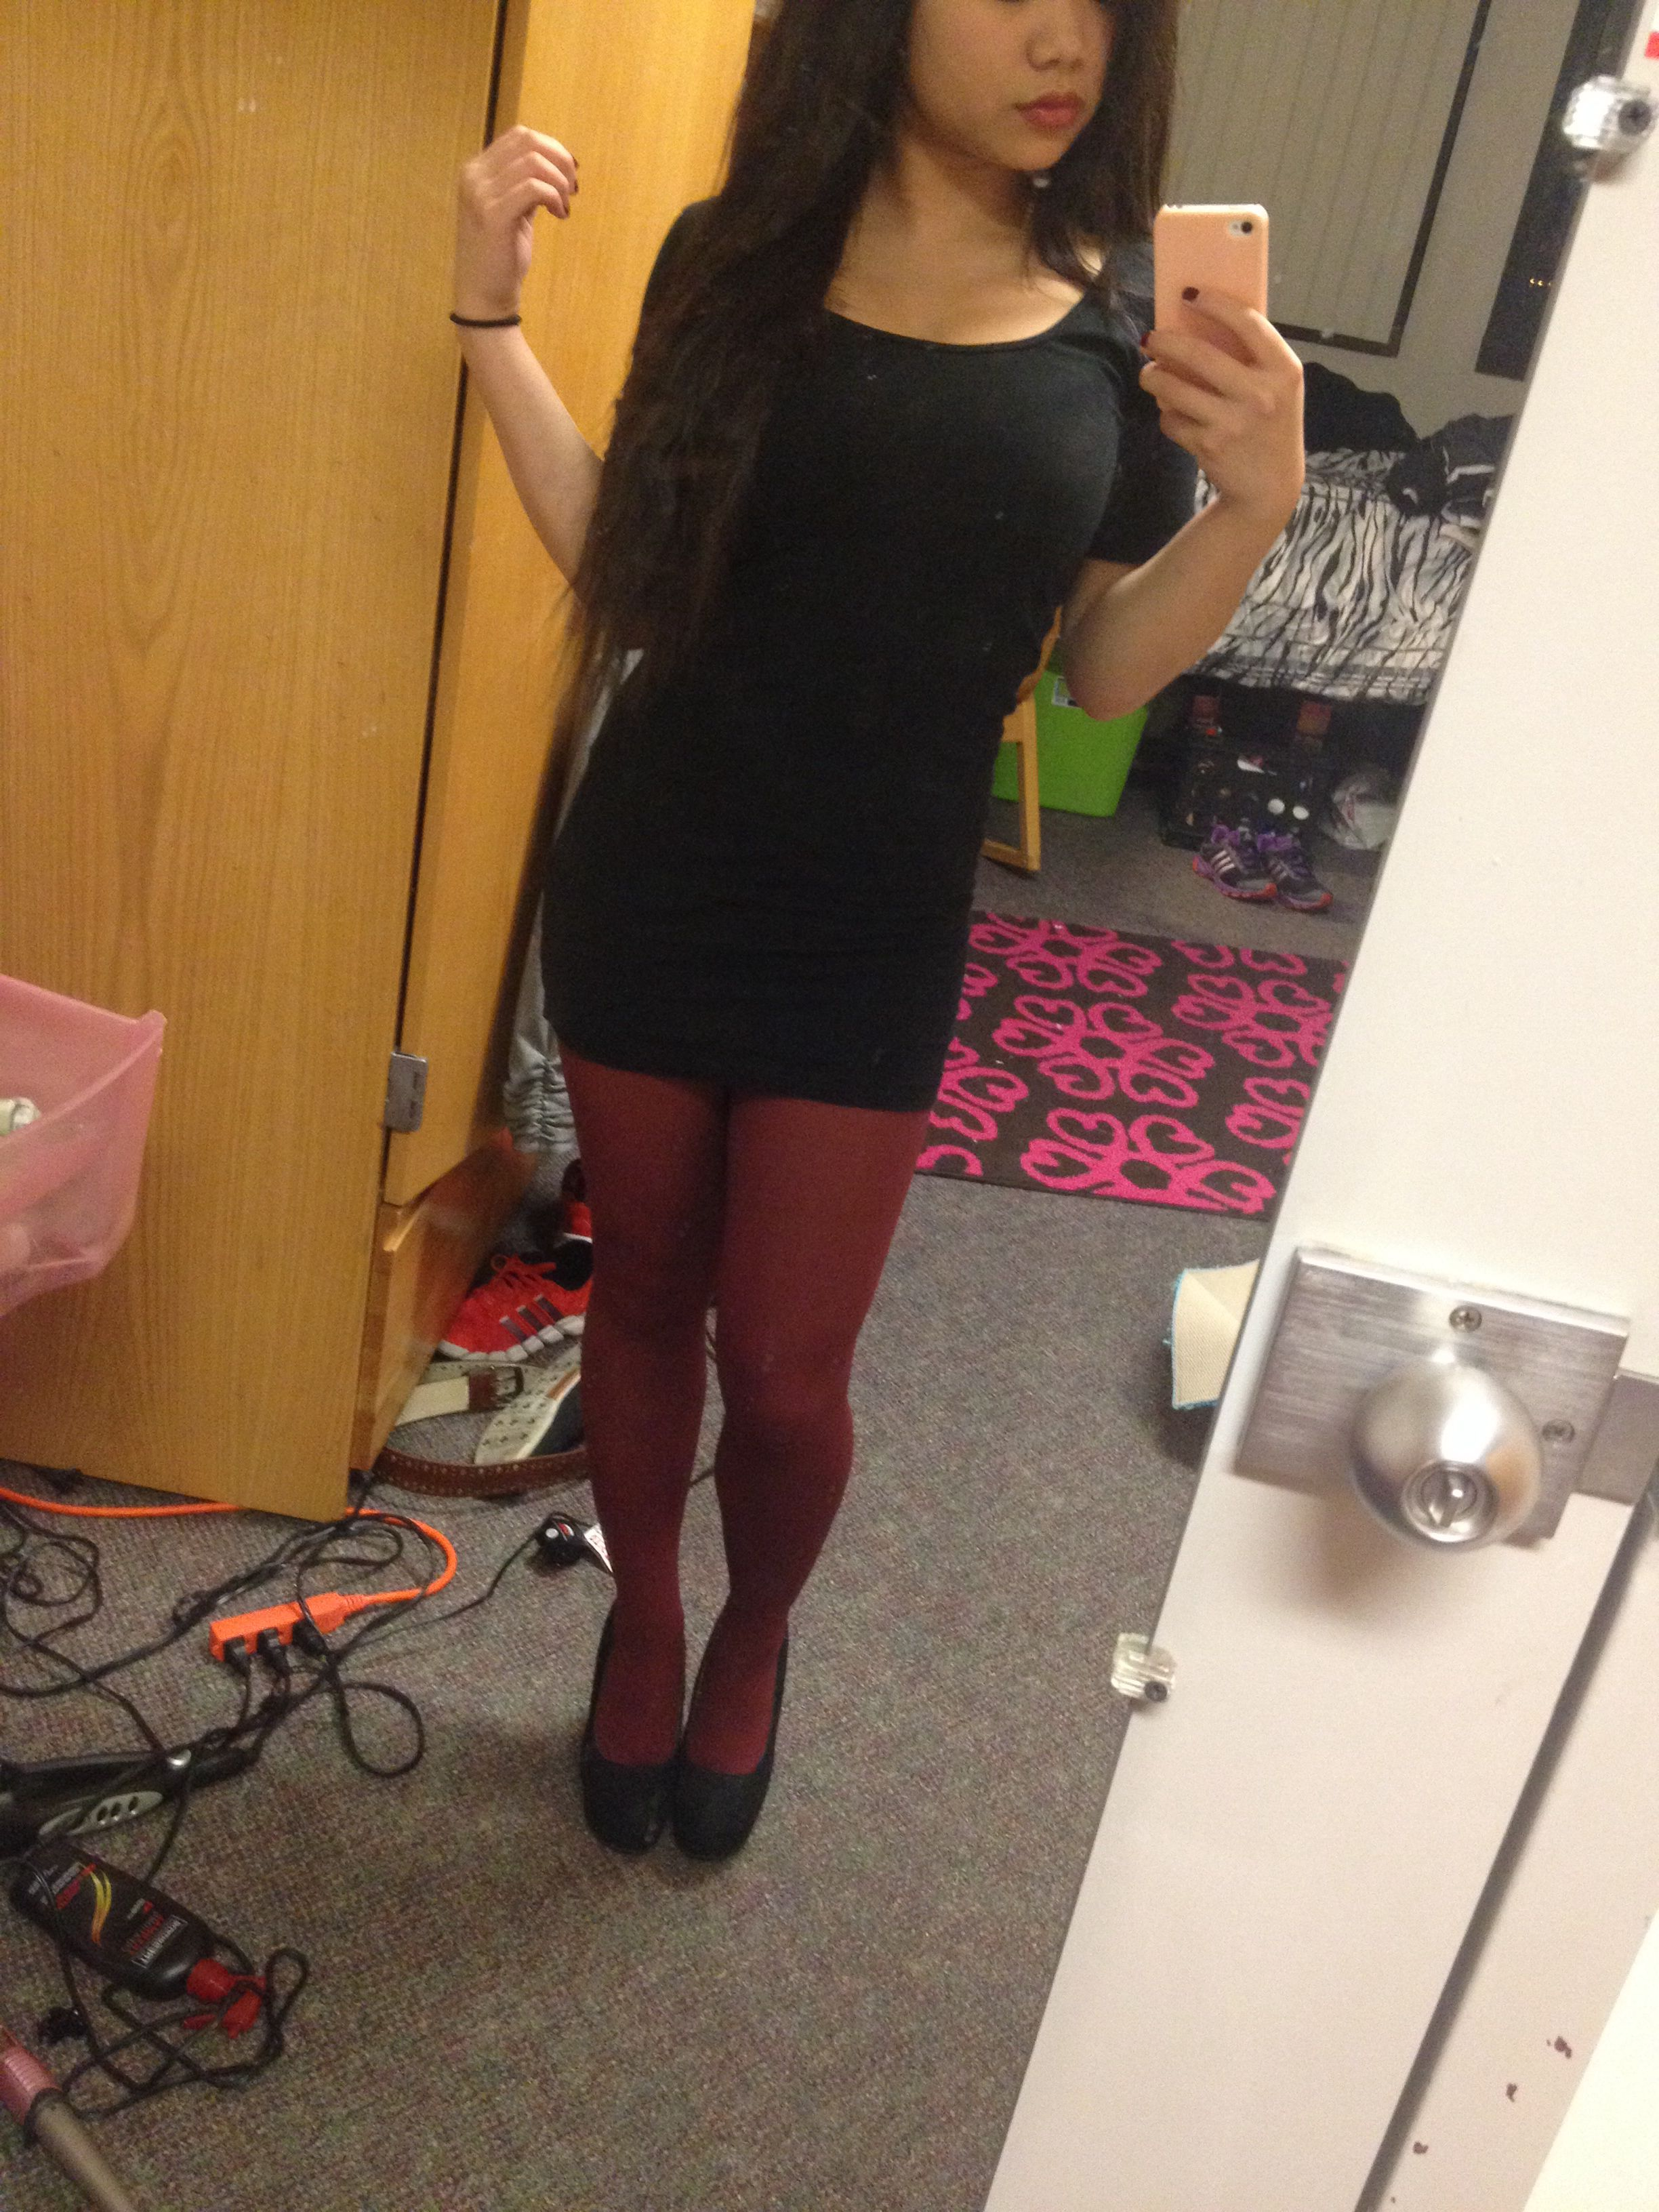 Burgundy Tights And Right Black Dress With Wedges Burgundy Tights Dresses With Wedges Black Dress With Wedges [ 3264 x 2448 Pixel ]